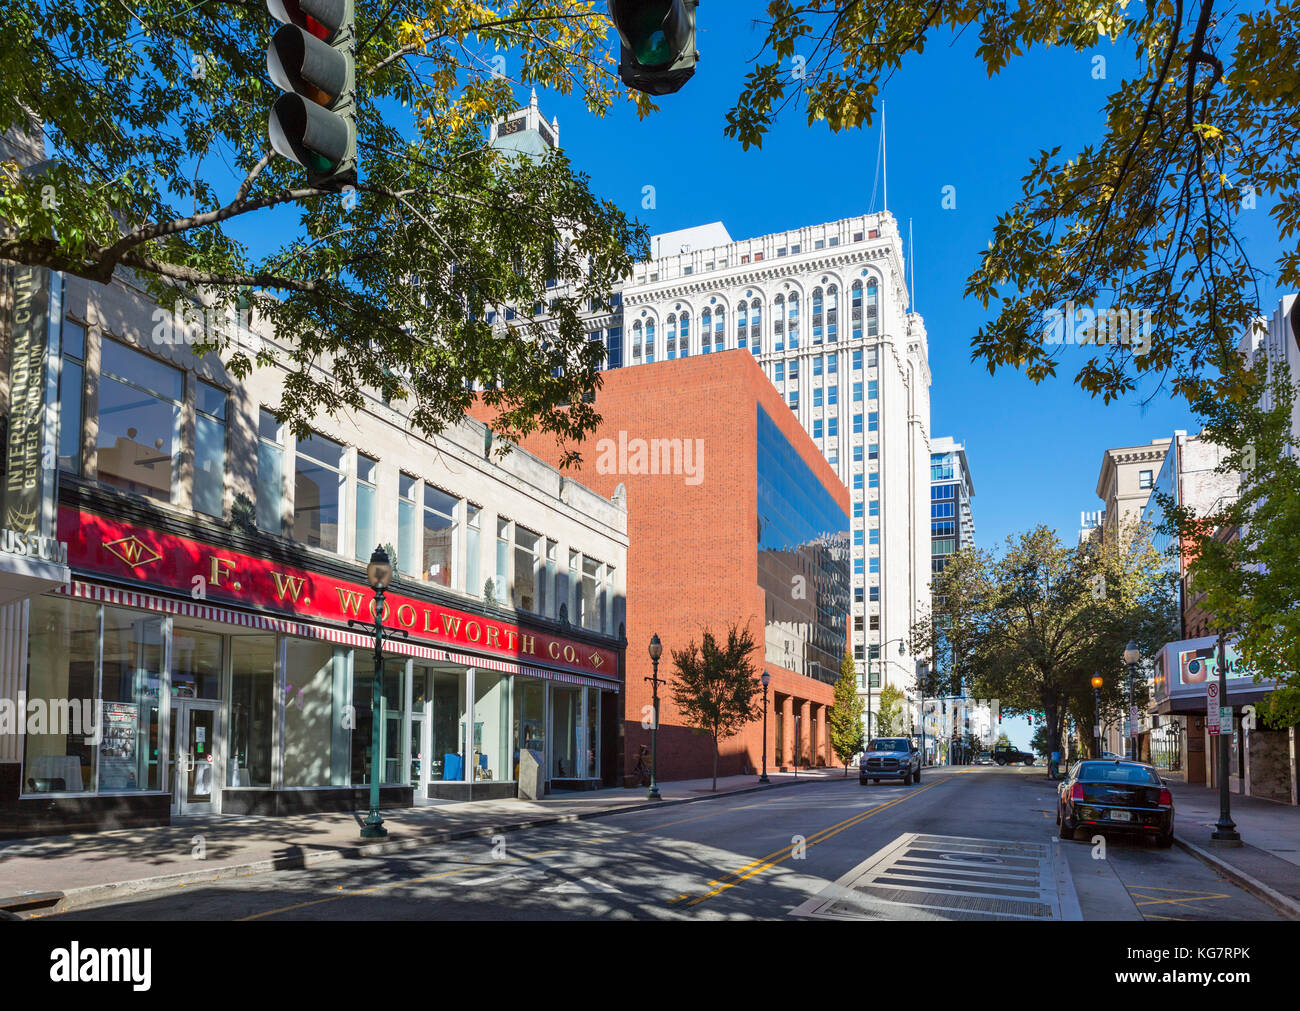 The old F W Woolworth store on S Elm Street, Greensboro, North Carolina, USA. The building now houses the International - Stock Image